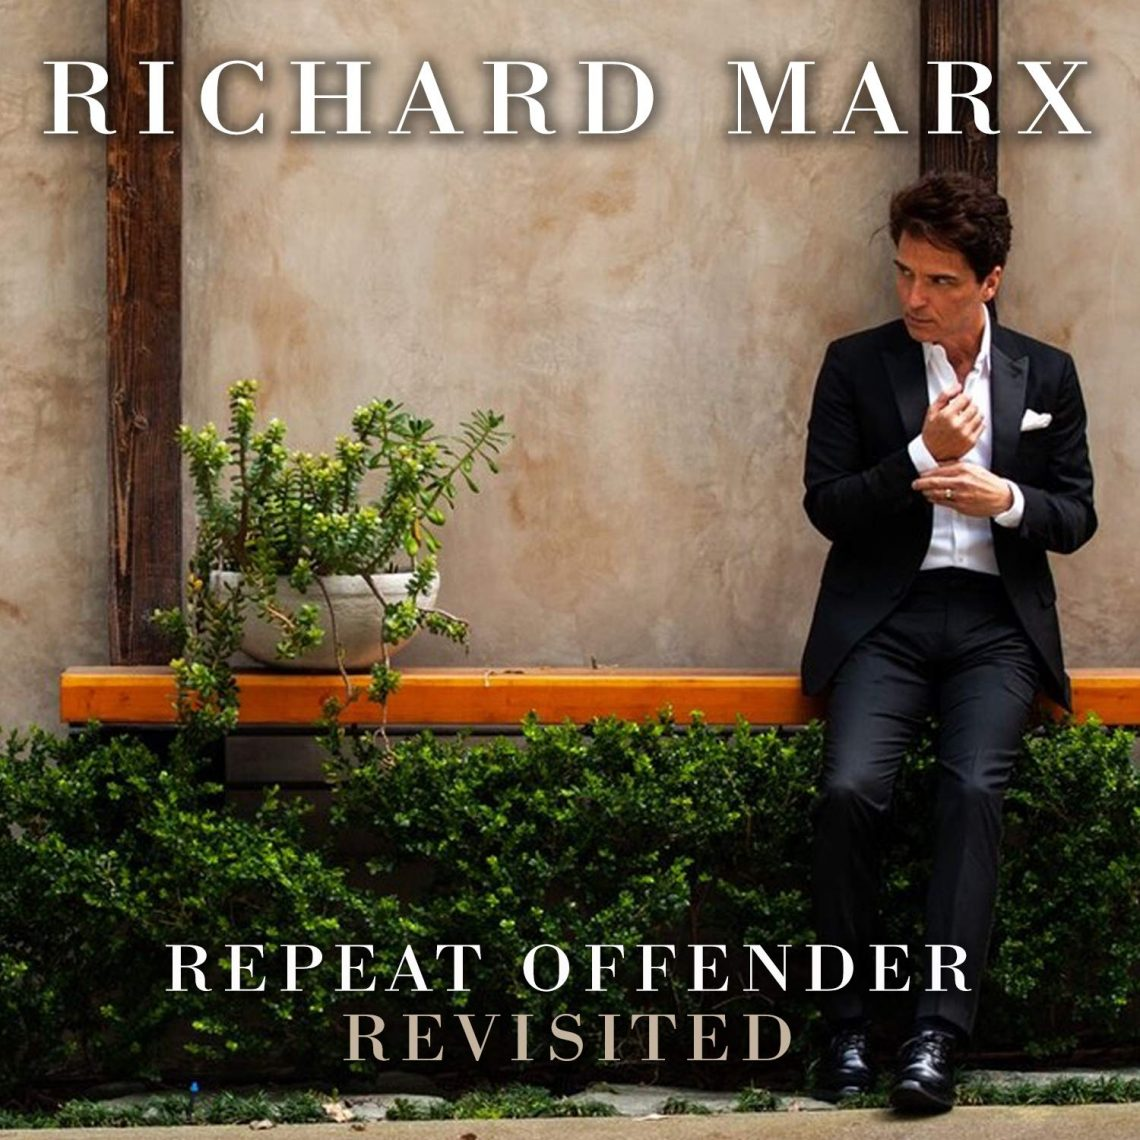 Richard Marx - Repeat Offender Revisited